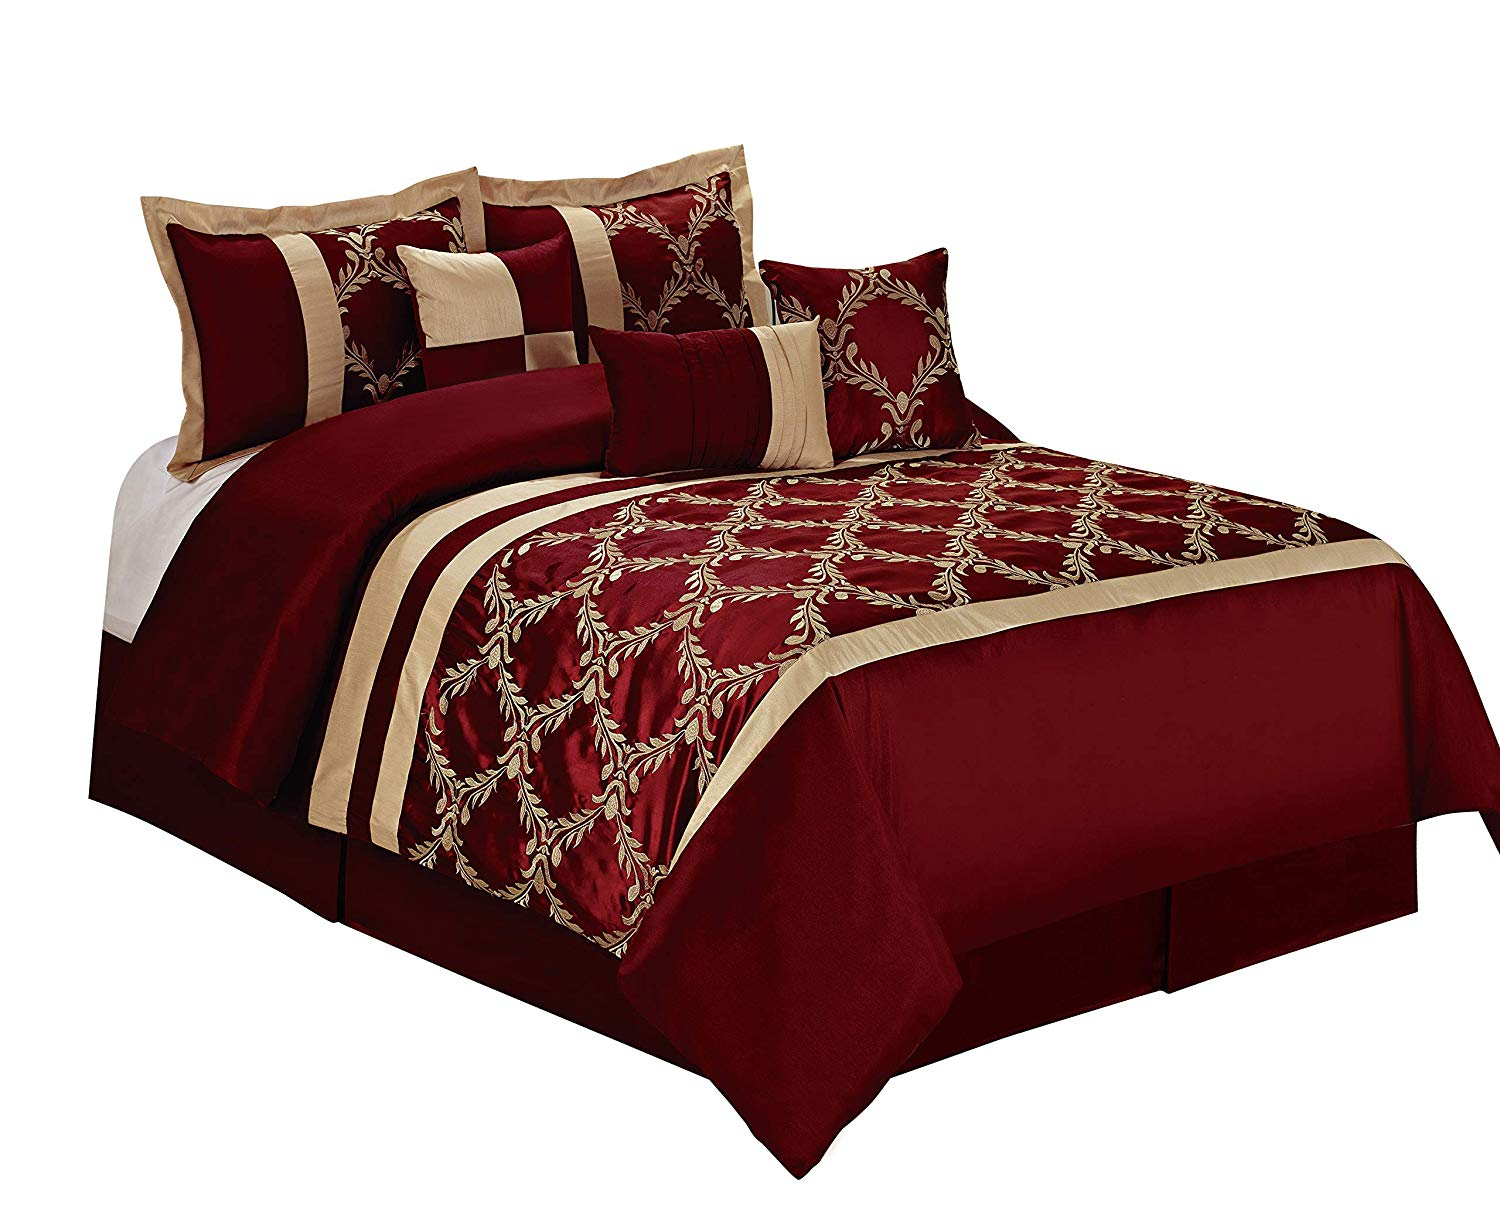 hig 7 piece comforter set king burgundy and gold taffeta fabric embroideried claremont bed in a bag king size smooth and good gloss 1 comforter 2